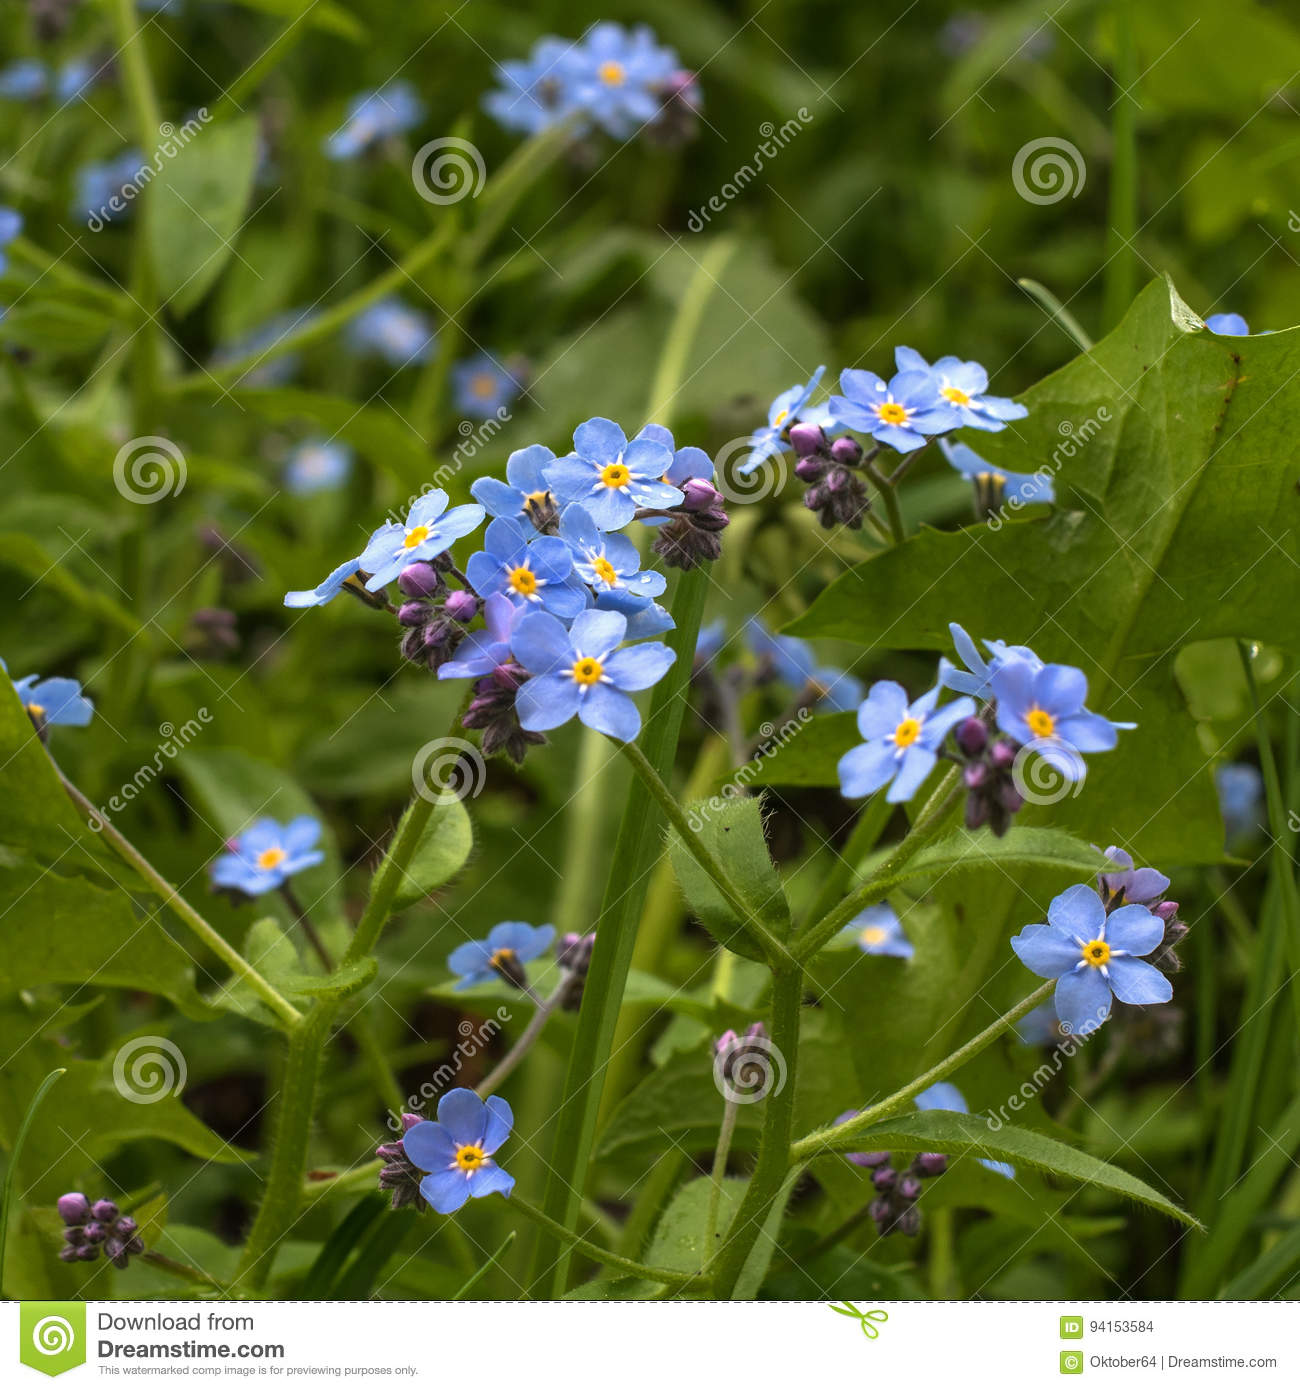 Forget Me Nots Are Small Wildflowers Of Blue Color The Center Of